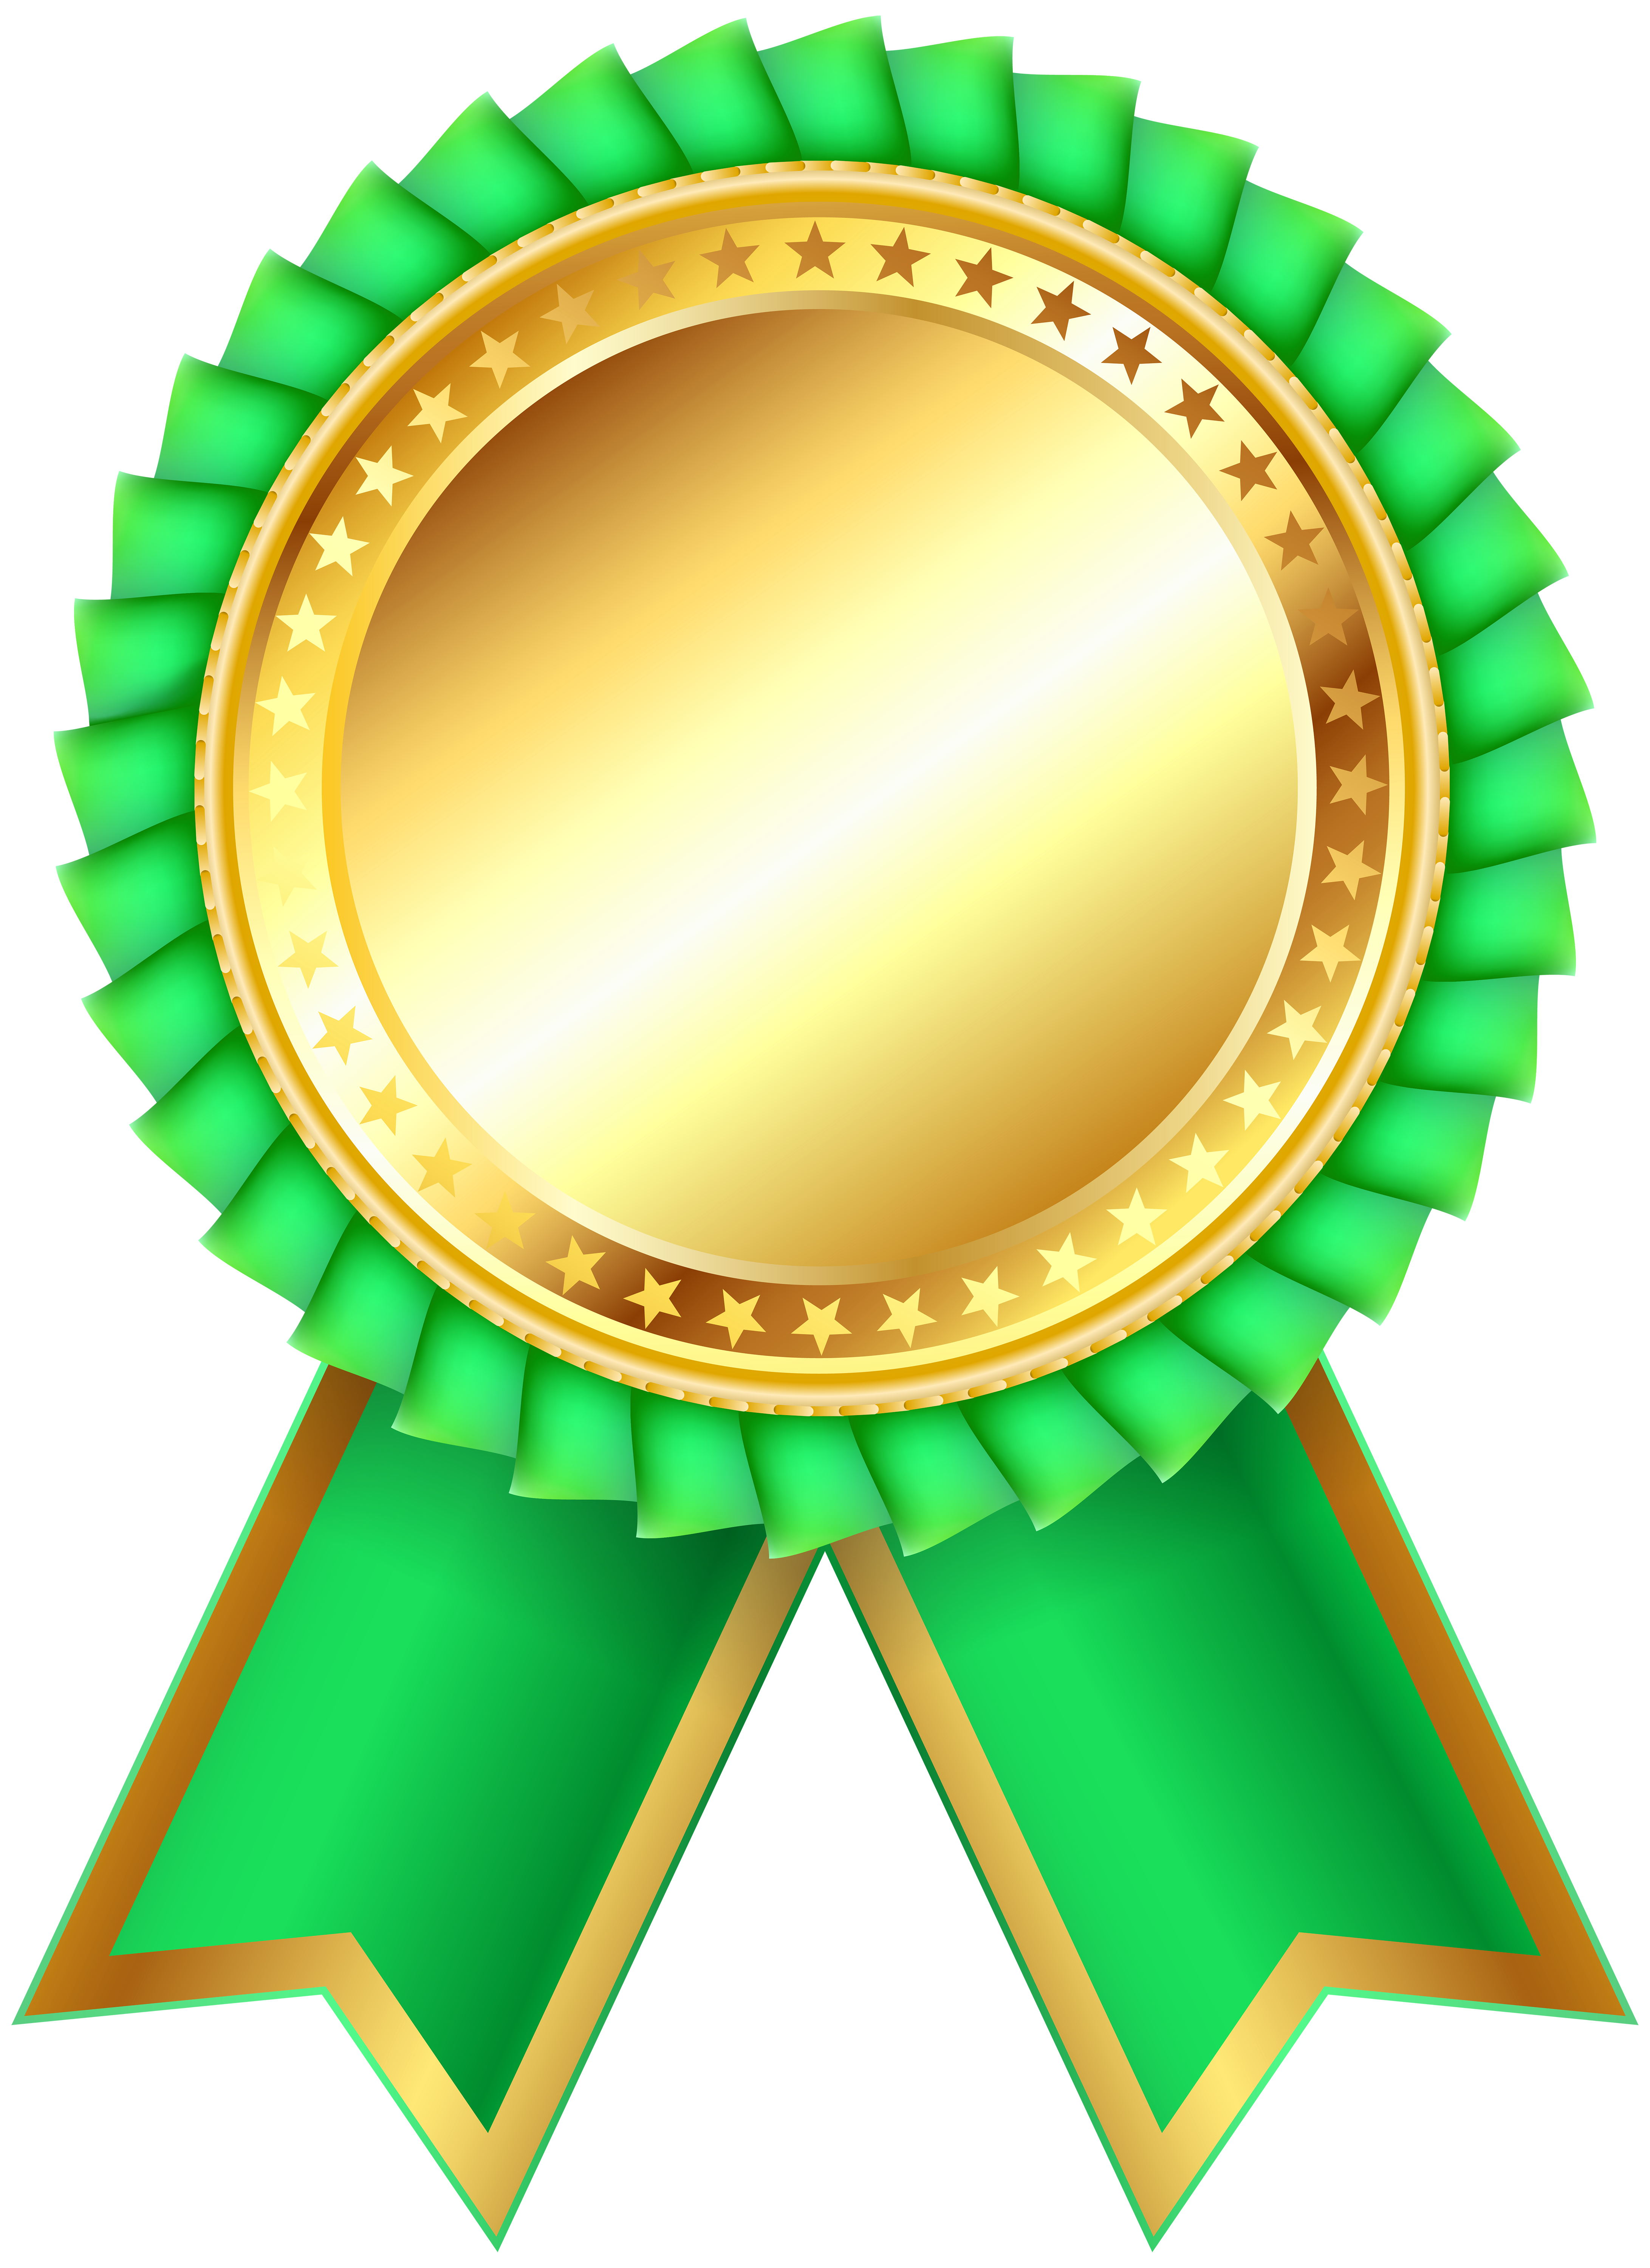 Award Clipart Transparent Background.